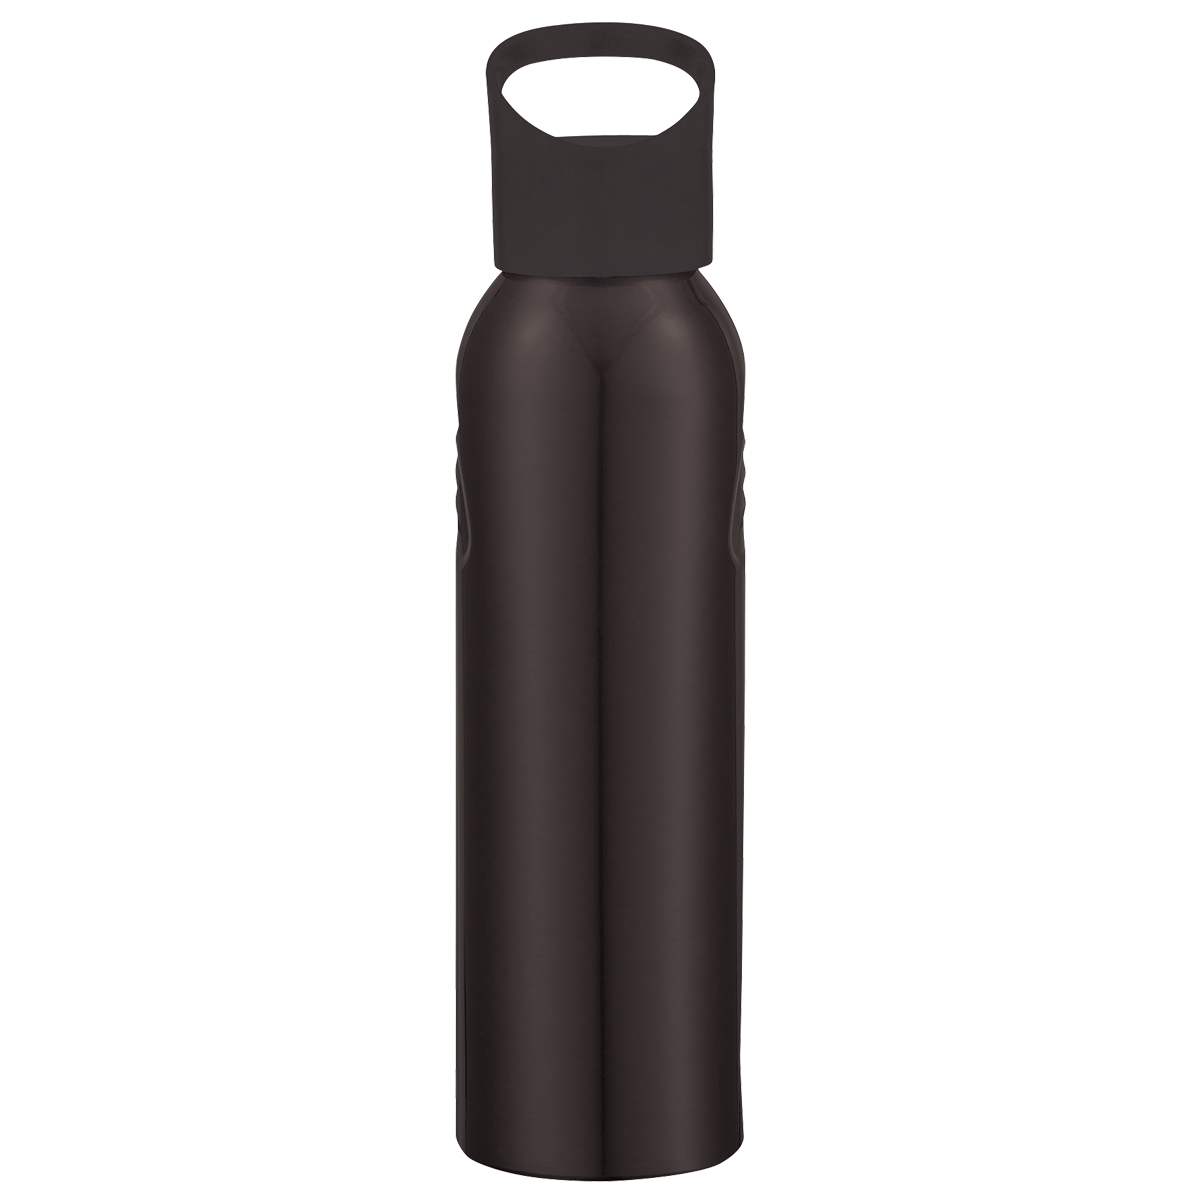 #CM 5707 - 20 Oz. Aluminum Sports Bottle